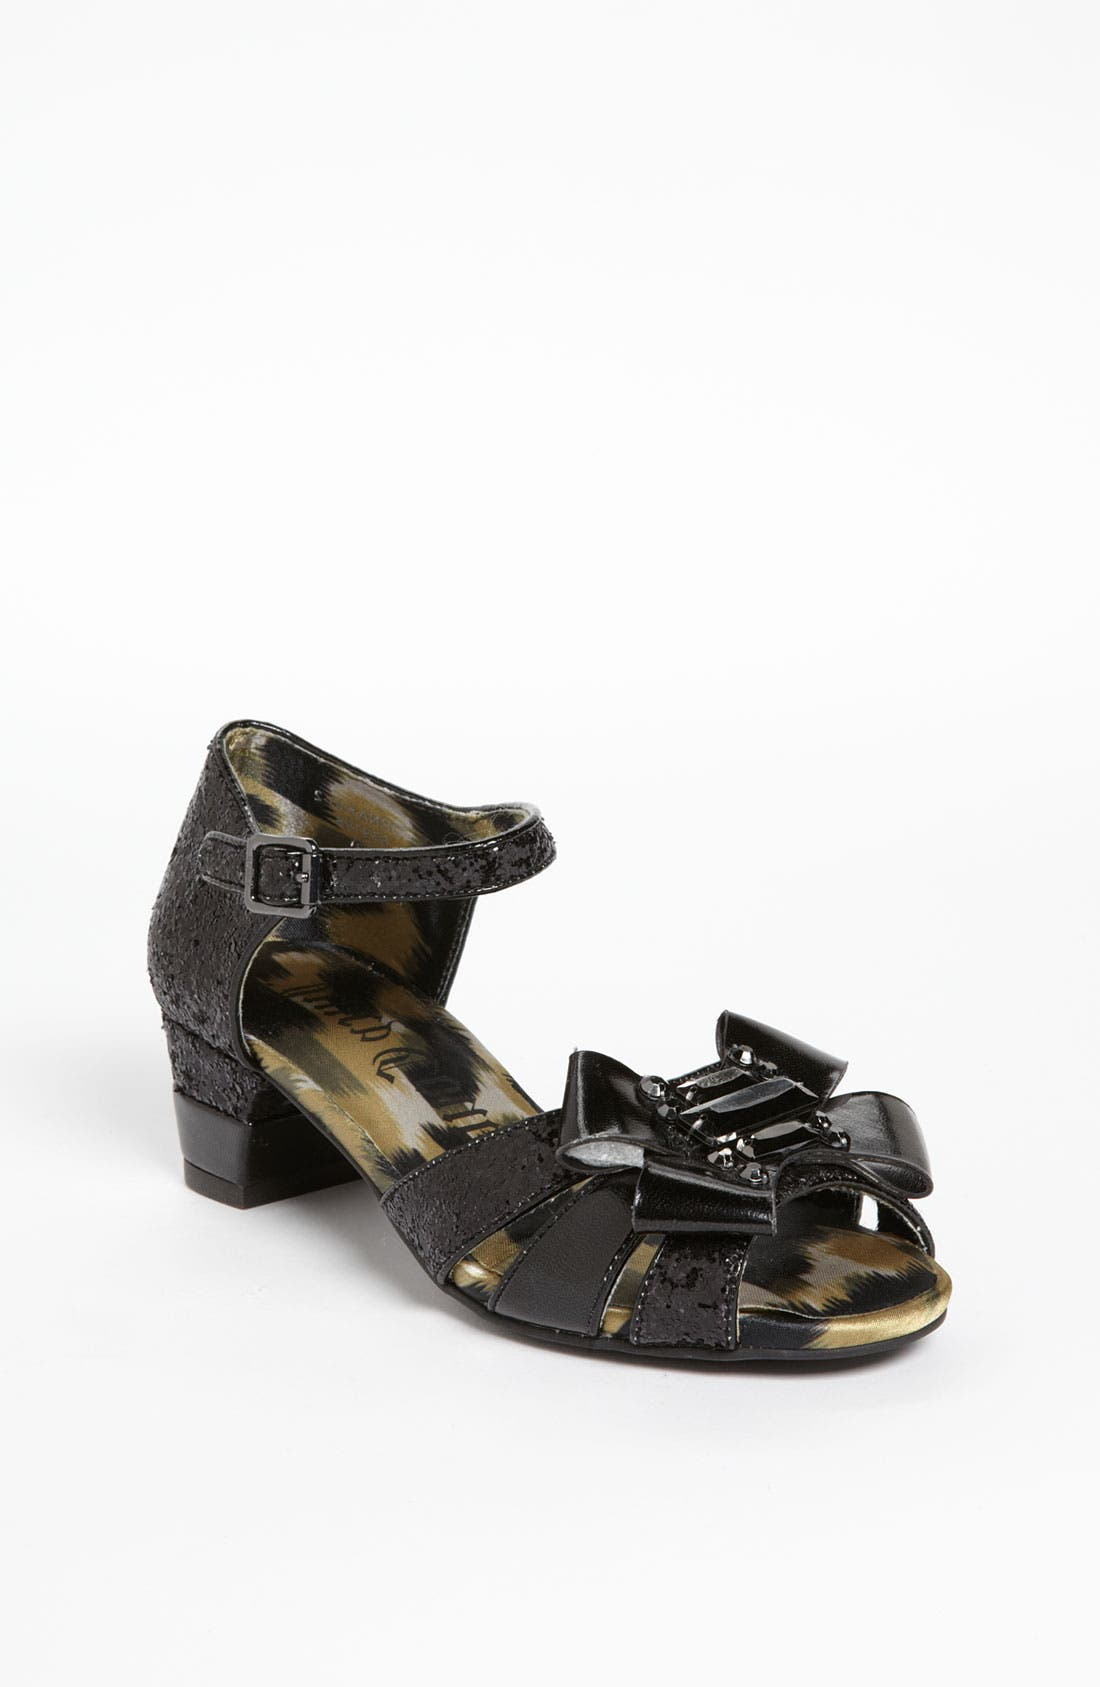 Main Image - Juicy Couture 'Lorna' Sandal (Toddler, Little Kid & Big Kid)